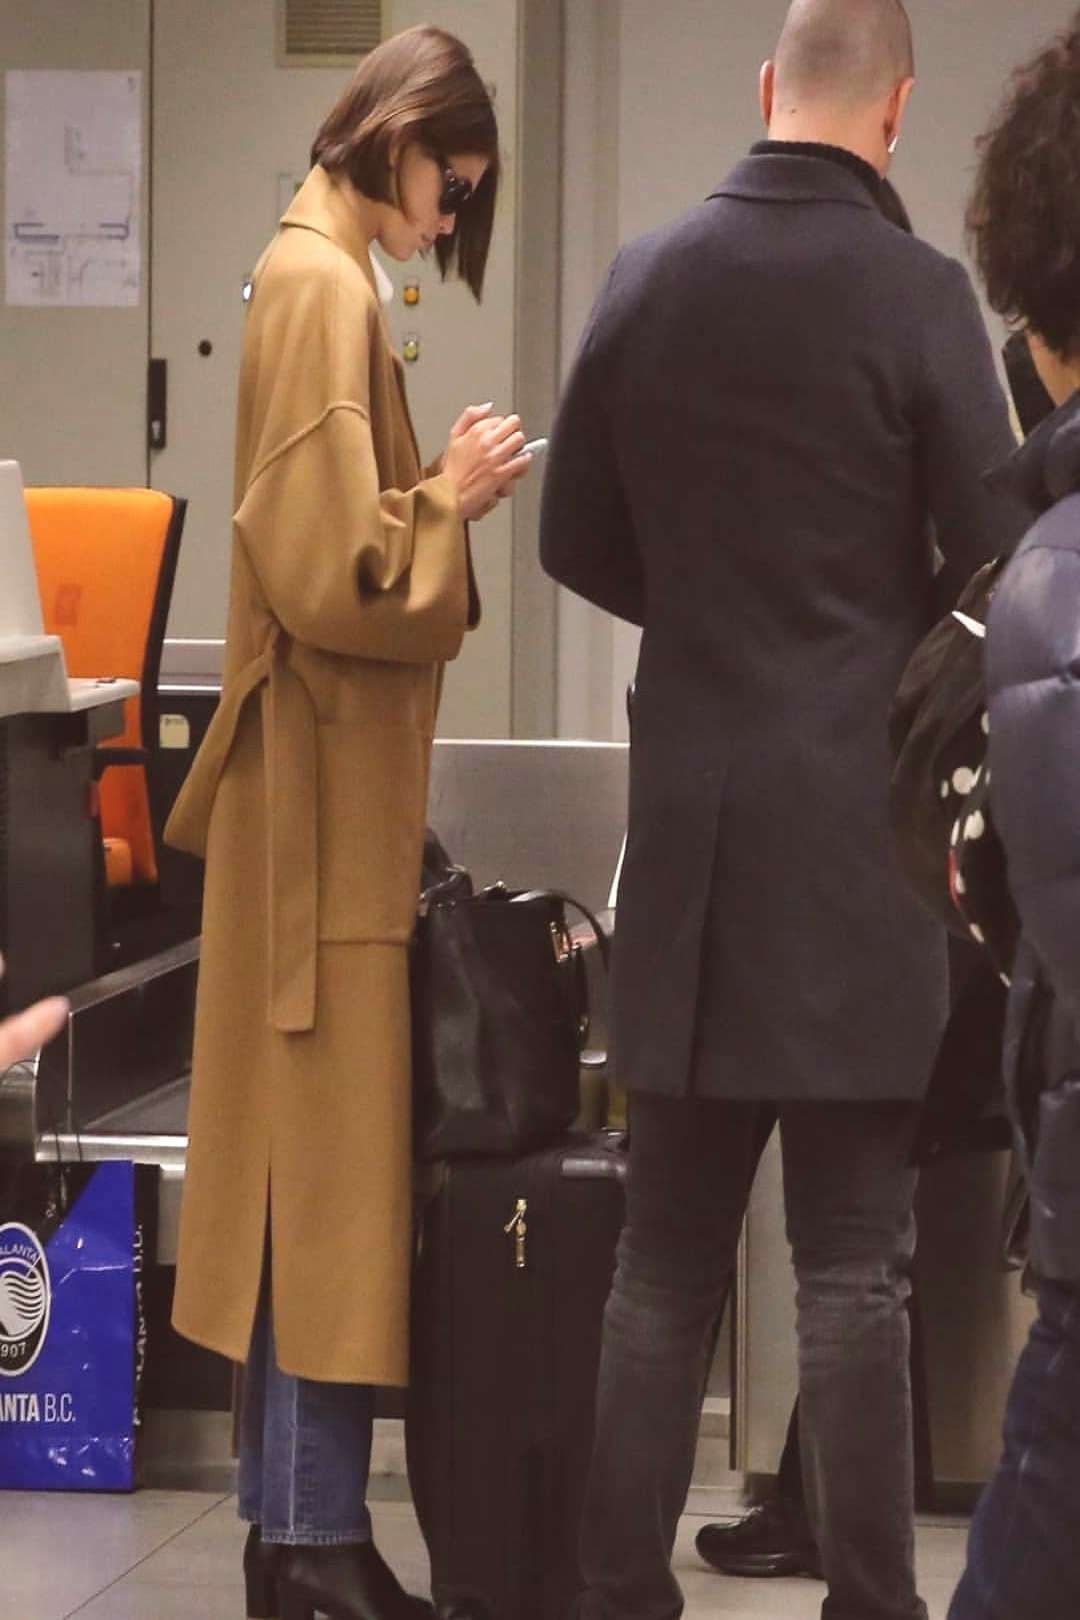 #peoplepeople #kaiagerber #standing #airport #230220 #gerber #shoes #milan #kaia #more #one #the #and #in #or 23/02/20: Kaia at the airport in Milan. #kaiagerber #kaia #gerberYou can find Cindy crawfor...